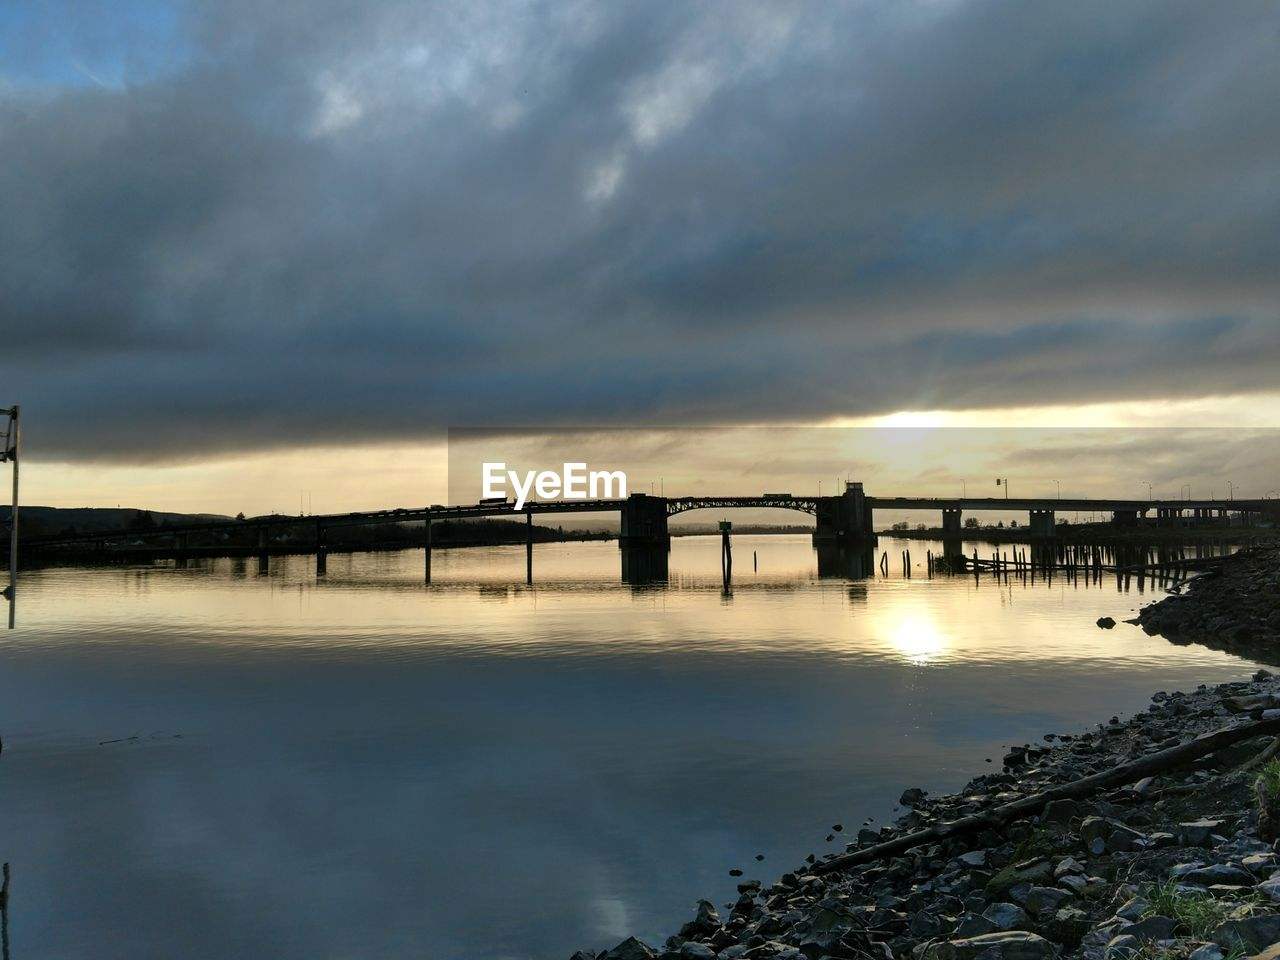 sunset, sky, cloud - sky, water, bridge - man made structure, connection, silhouette, nature, scenics, tranquility, outdoors, built structure, architecture, no people, tranquil scene, beauty in nature, sea, day